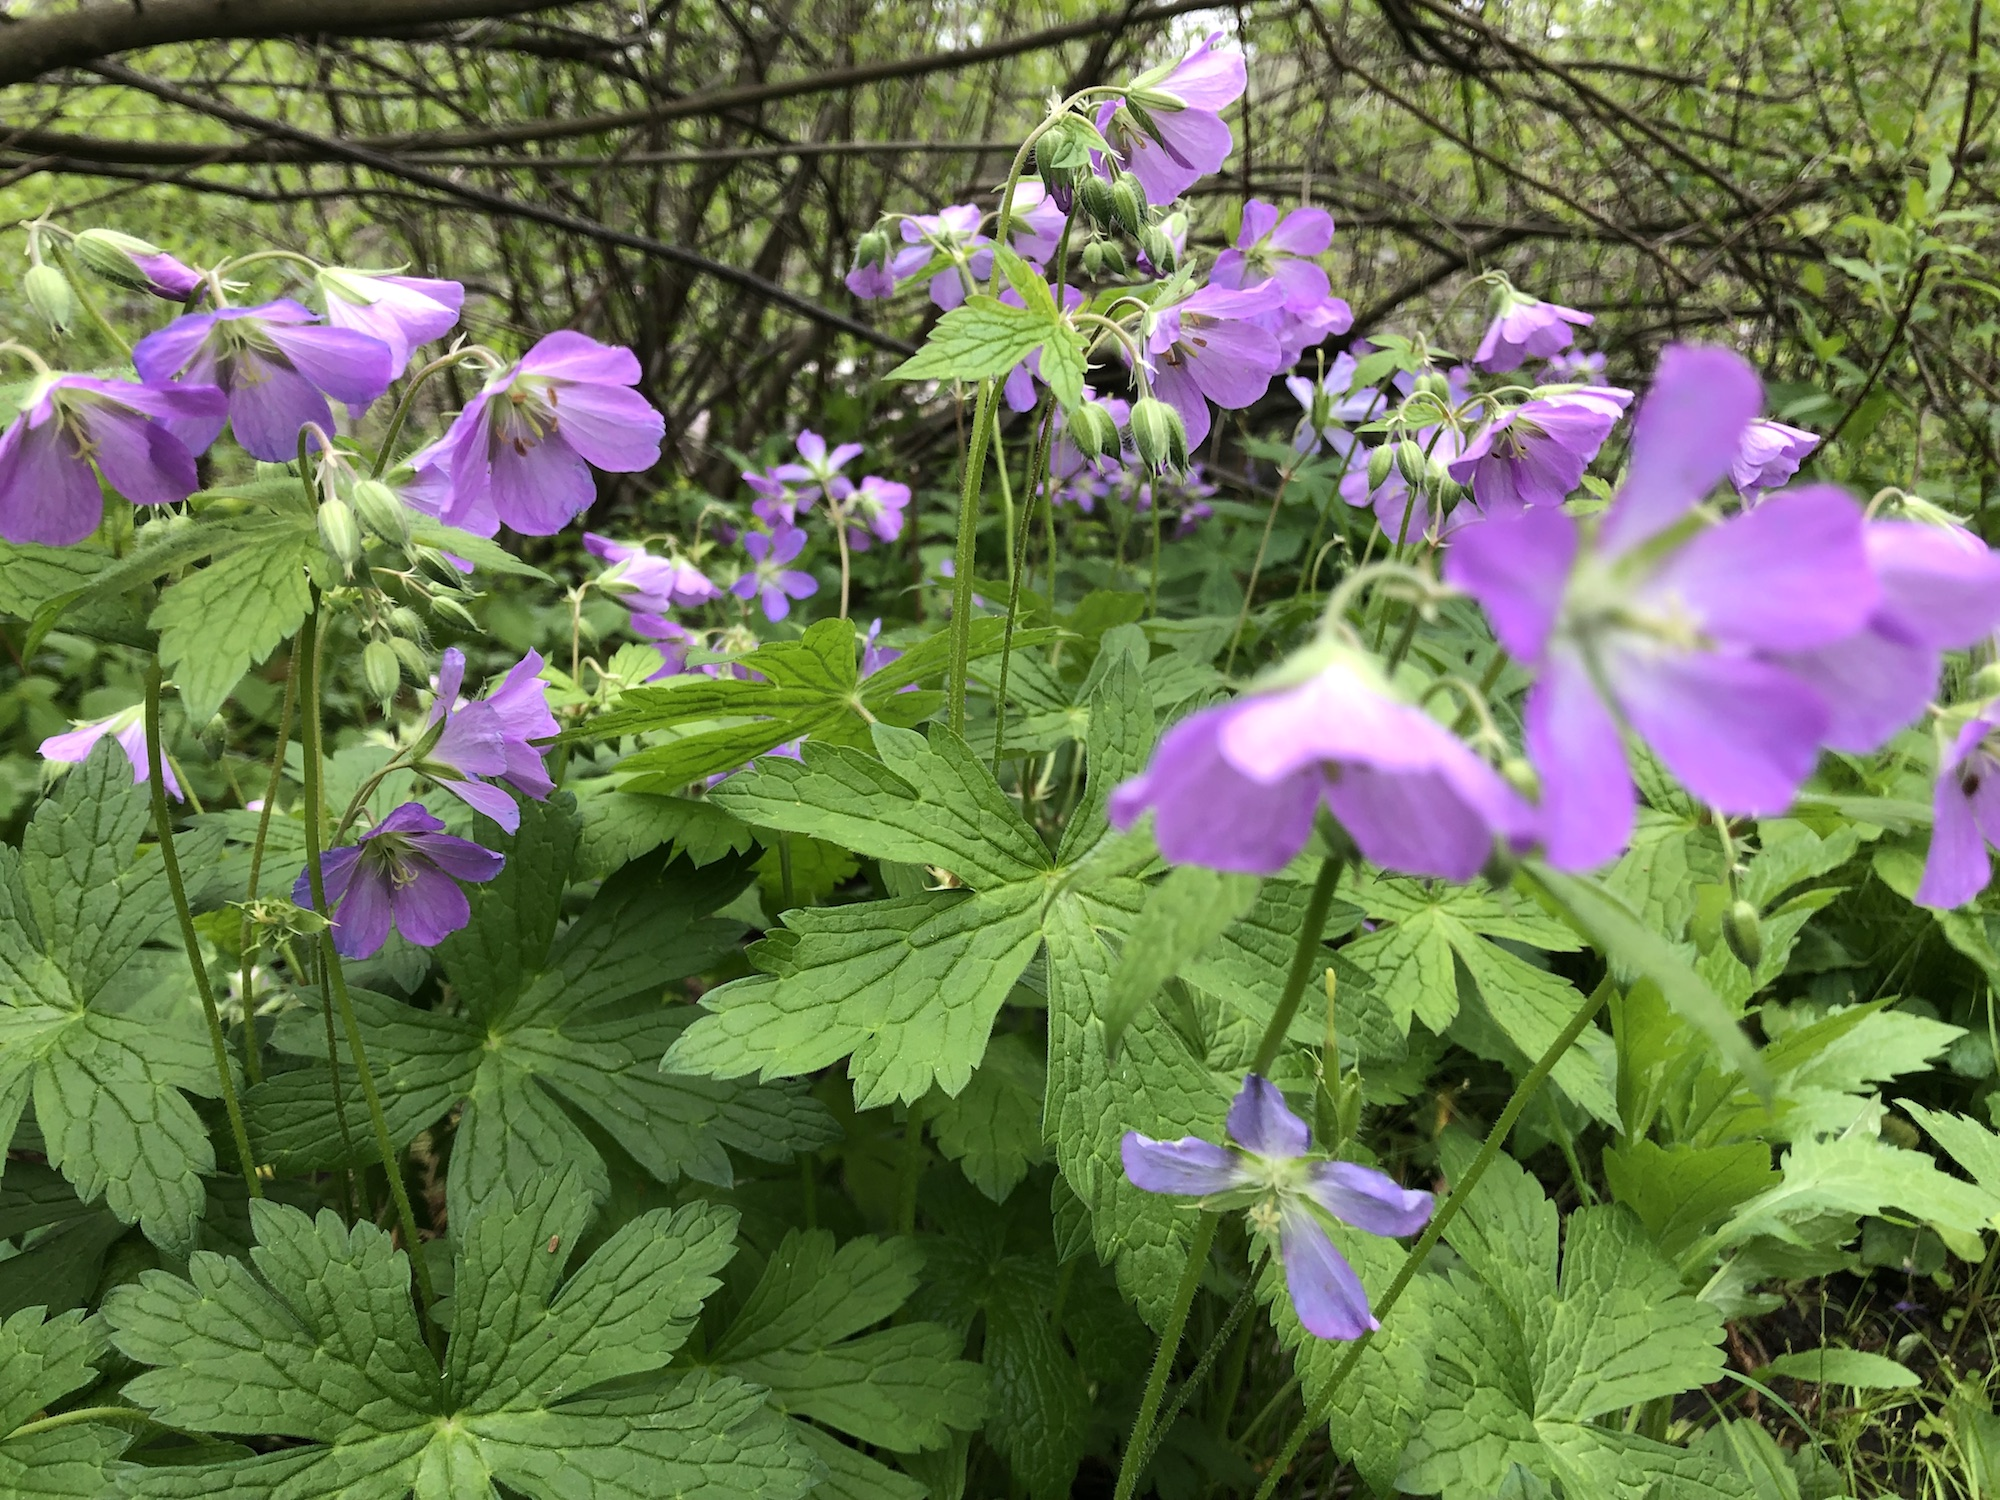 Wild Geranium in the Oak Savanna near Council Ring on May 20, 2019.